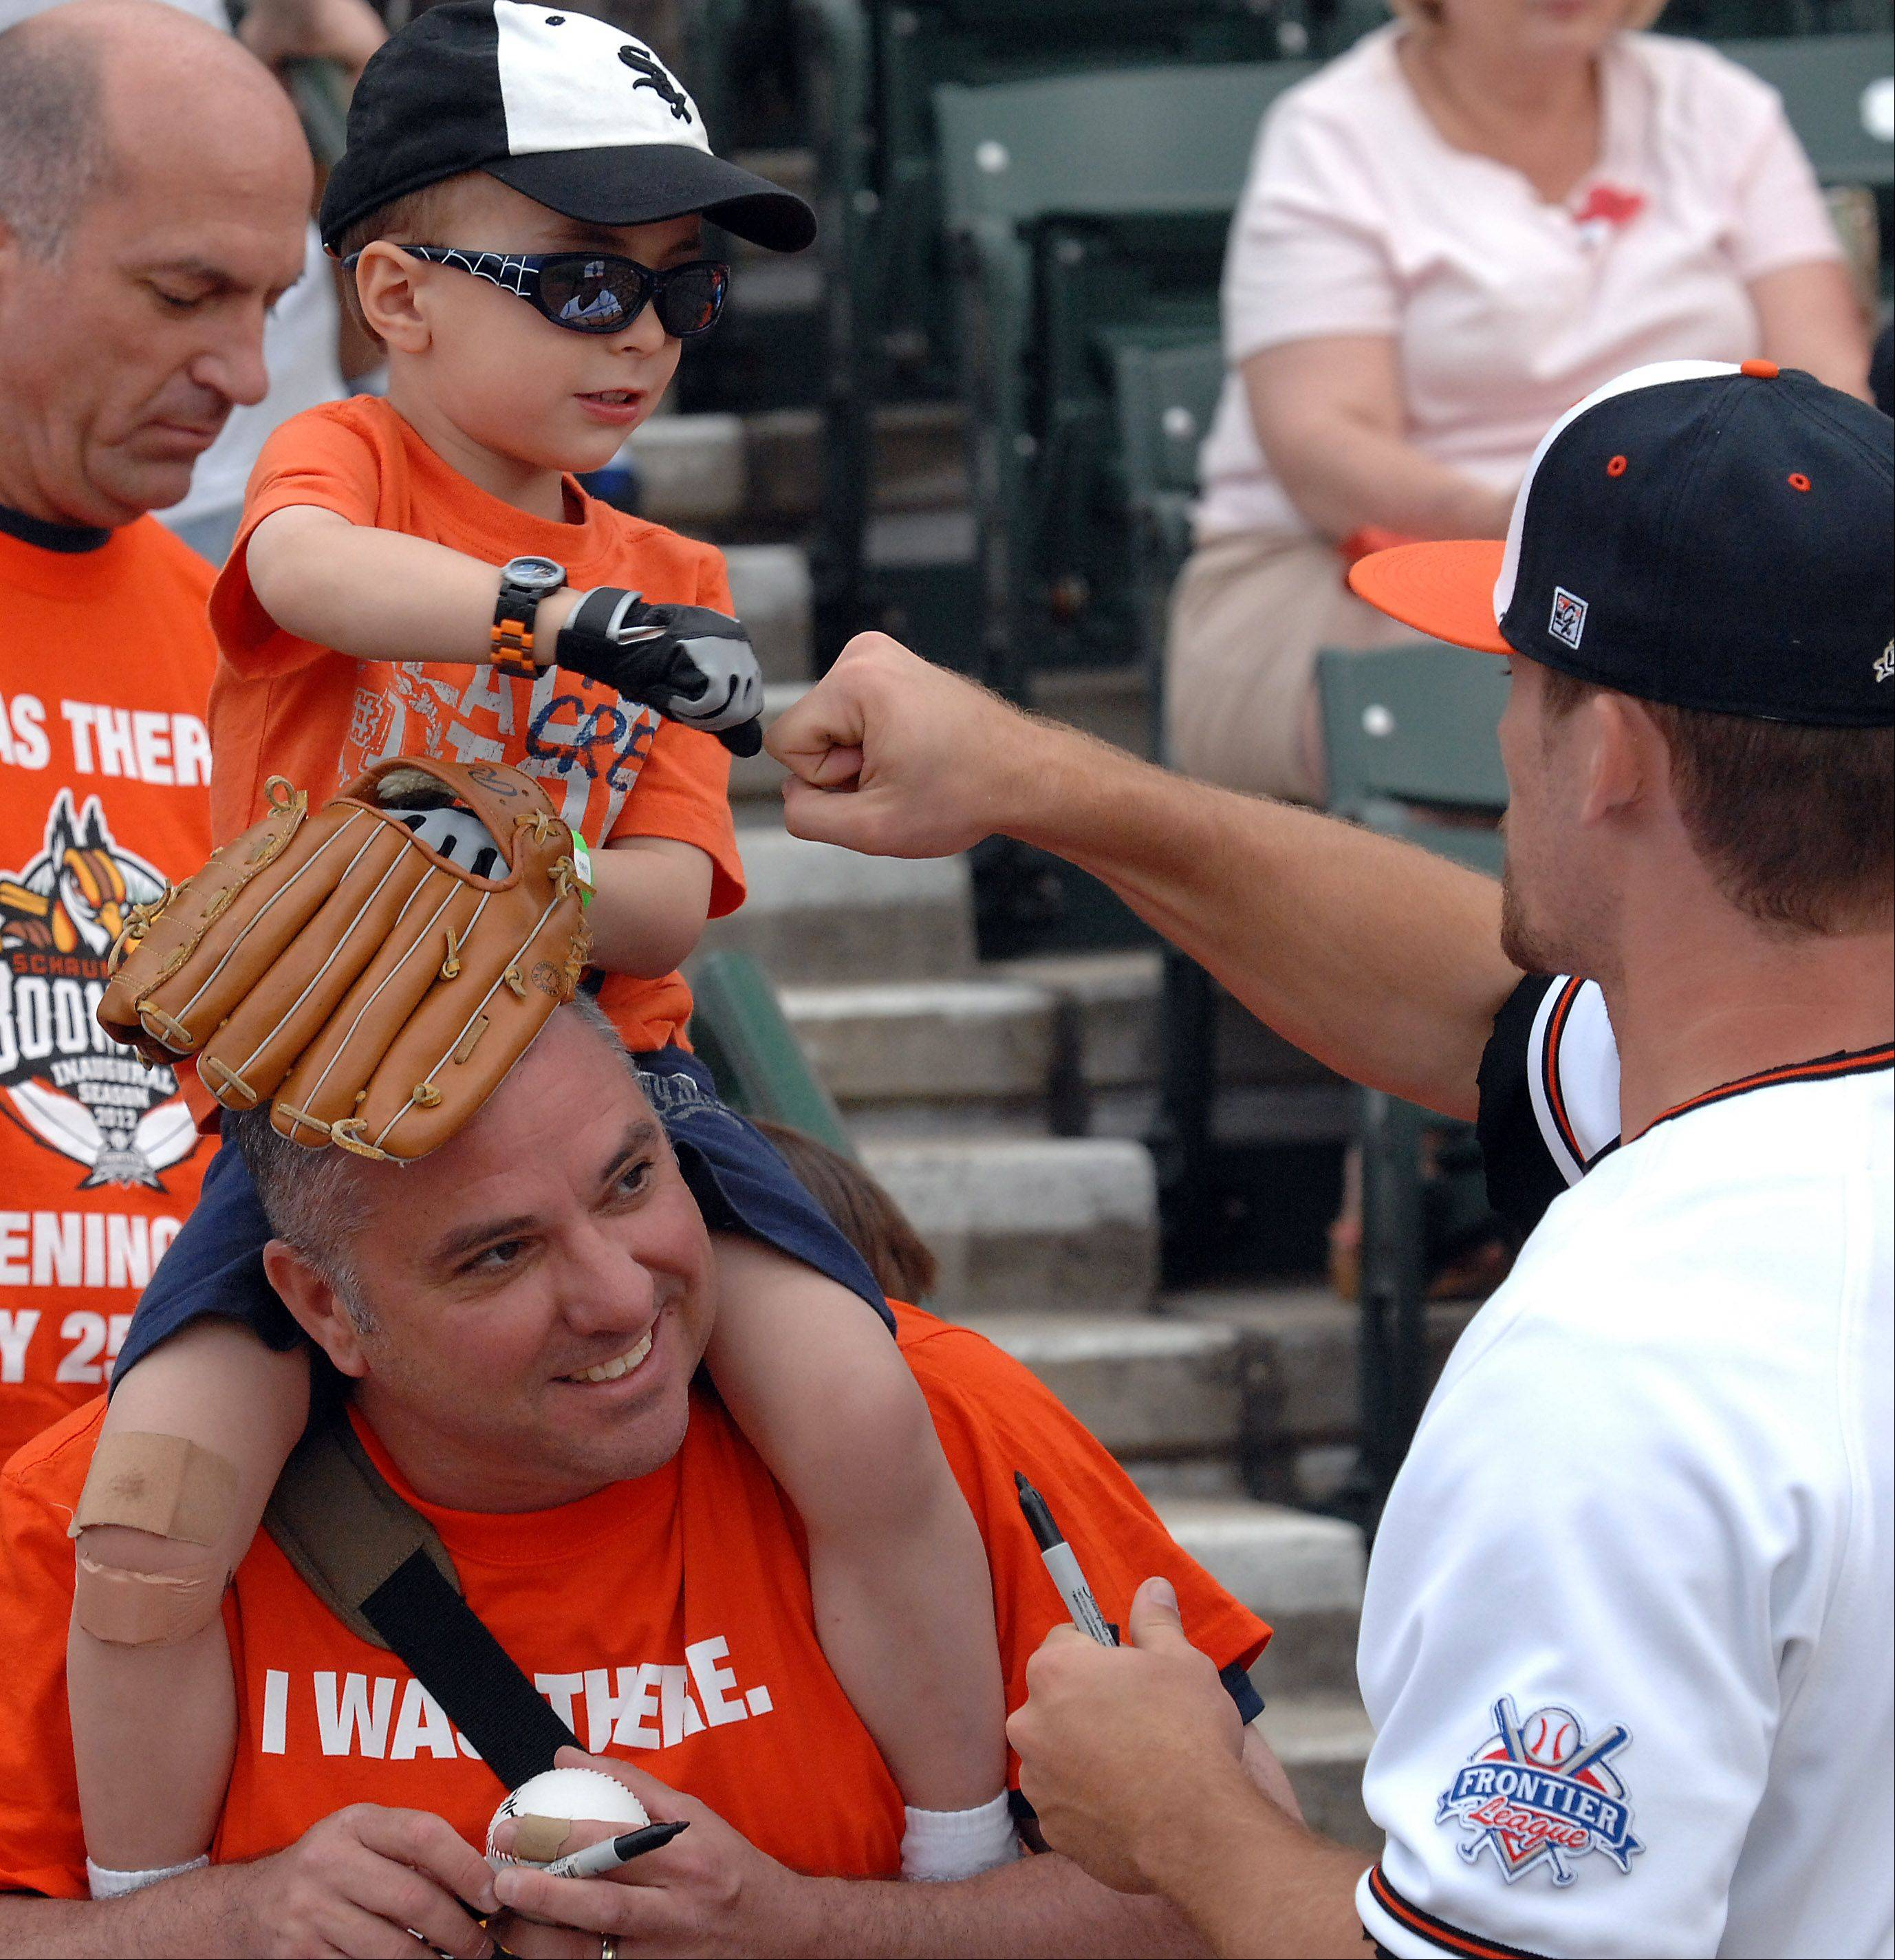 Baseball fans Brian Dykes and his son Calvin,3, of Glen Ellyn bump fists with player Chad Mozingo at Boomers Stadium in Schaumburg on Friday.